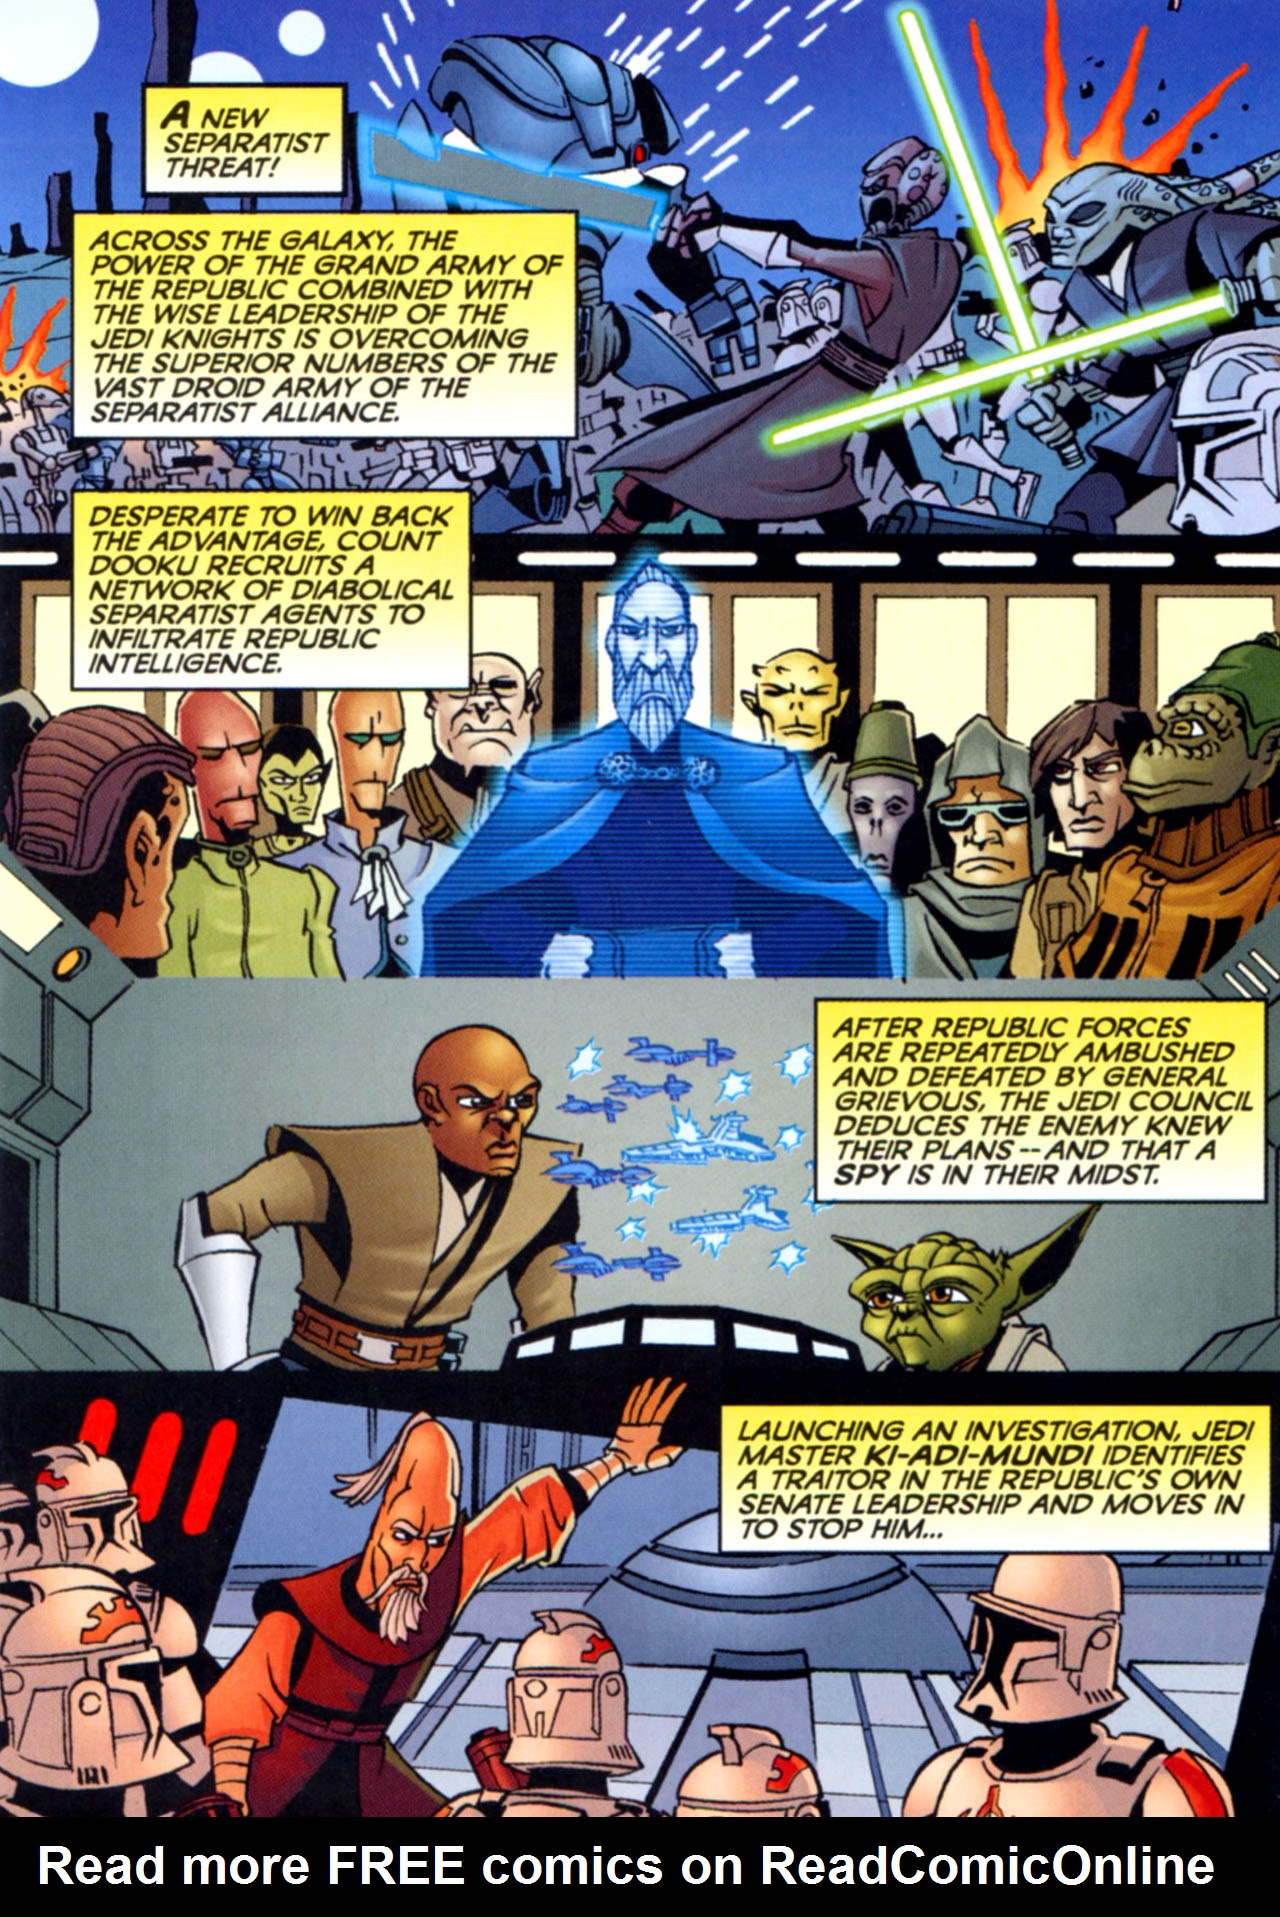 Read online Star Wars: The Clone Wars - Crash Course comic -  Issue # Full - 6